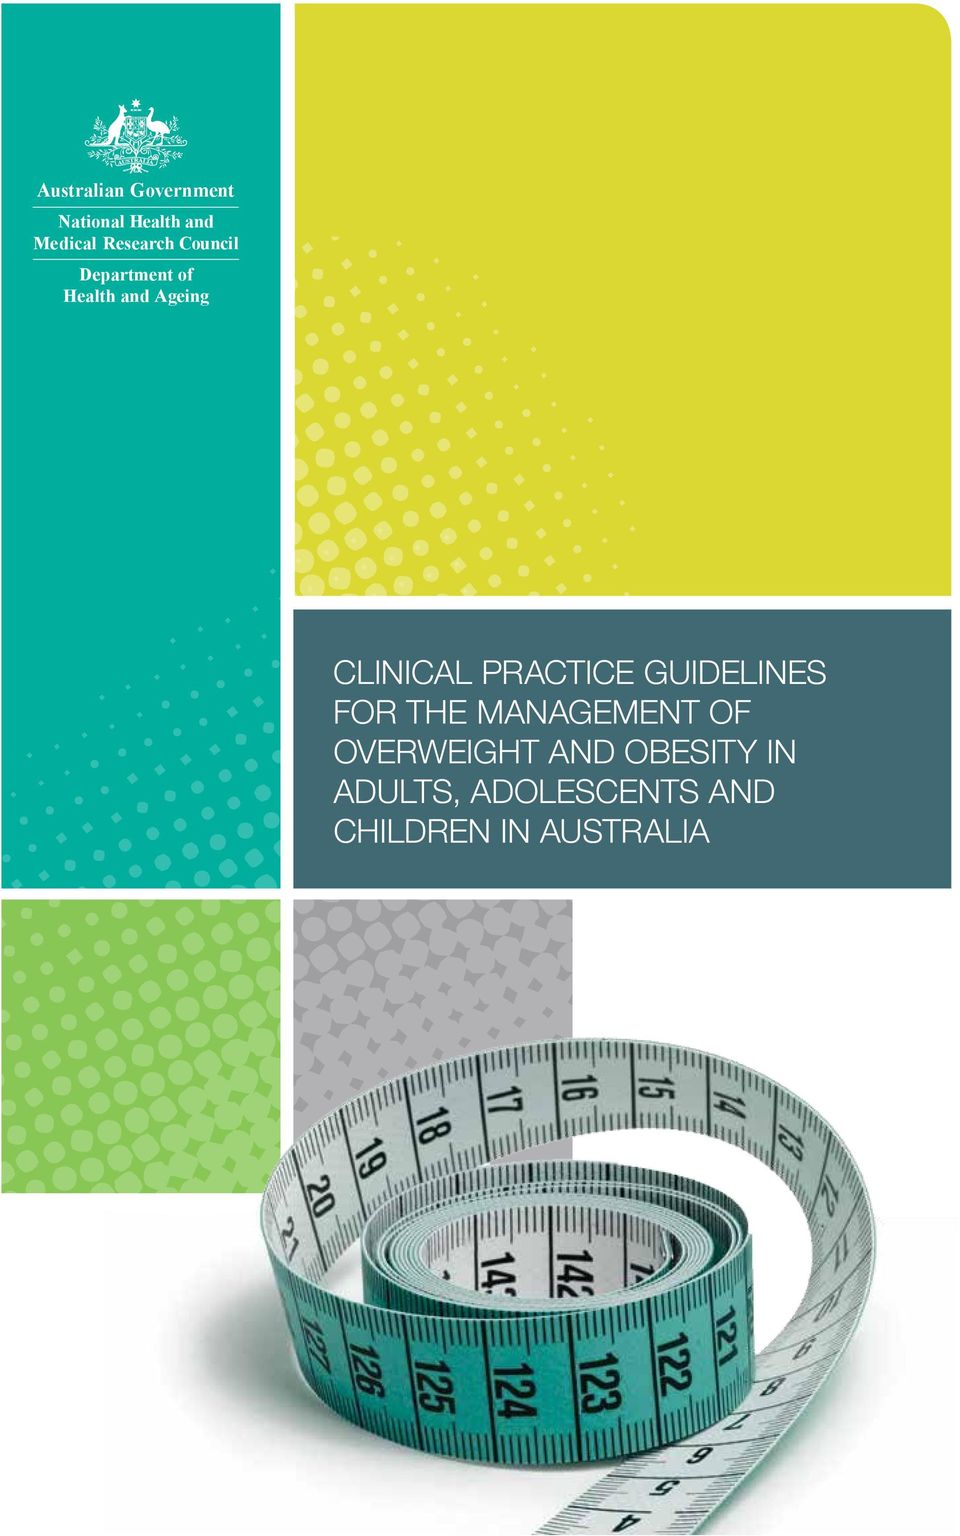 Clinical Practice Guidelines for the Management of